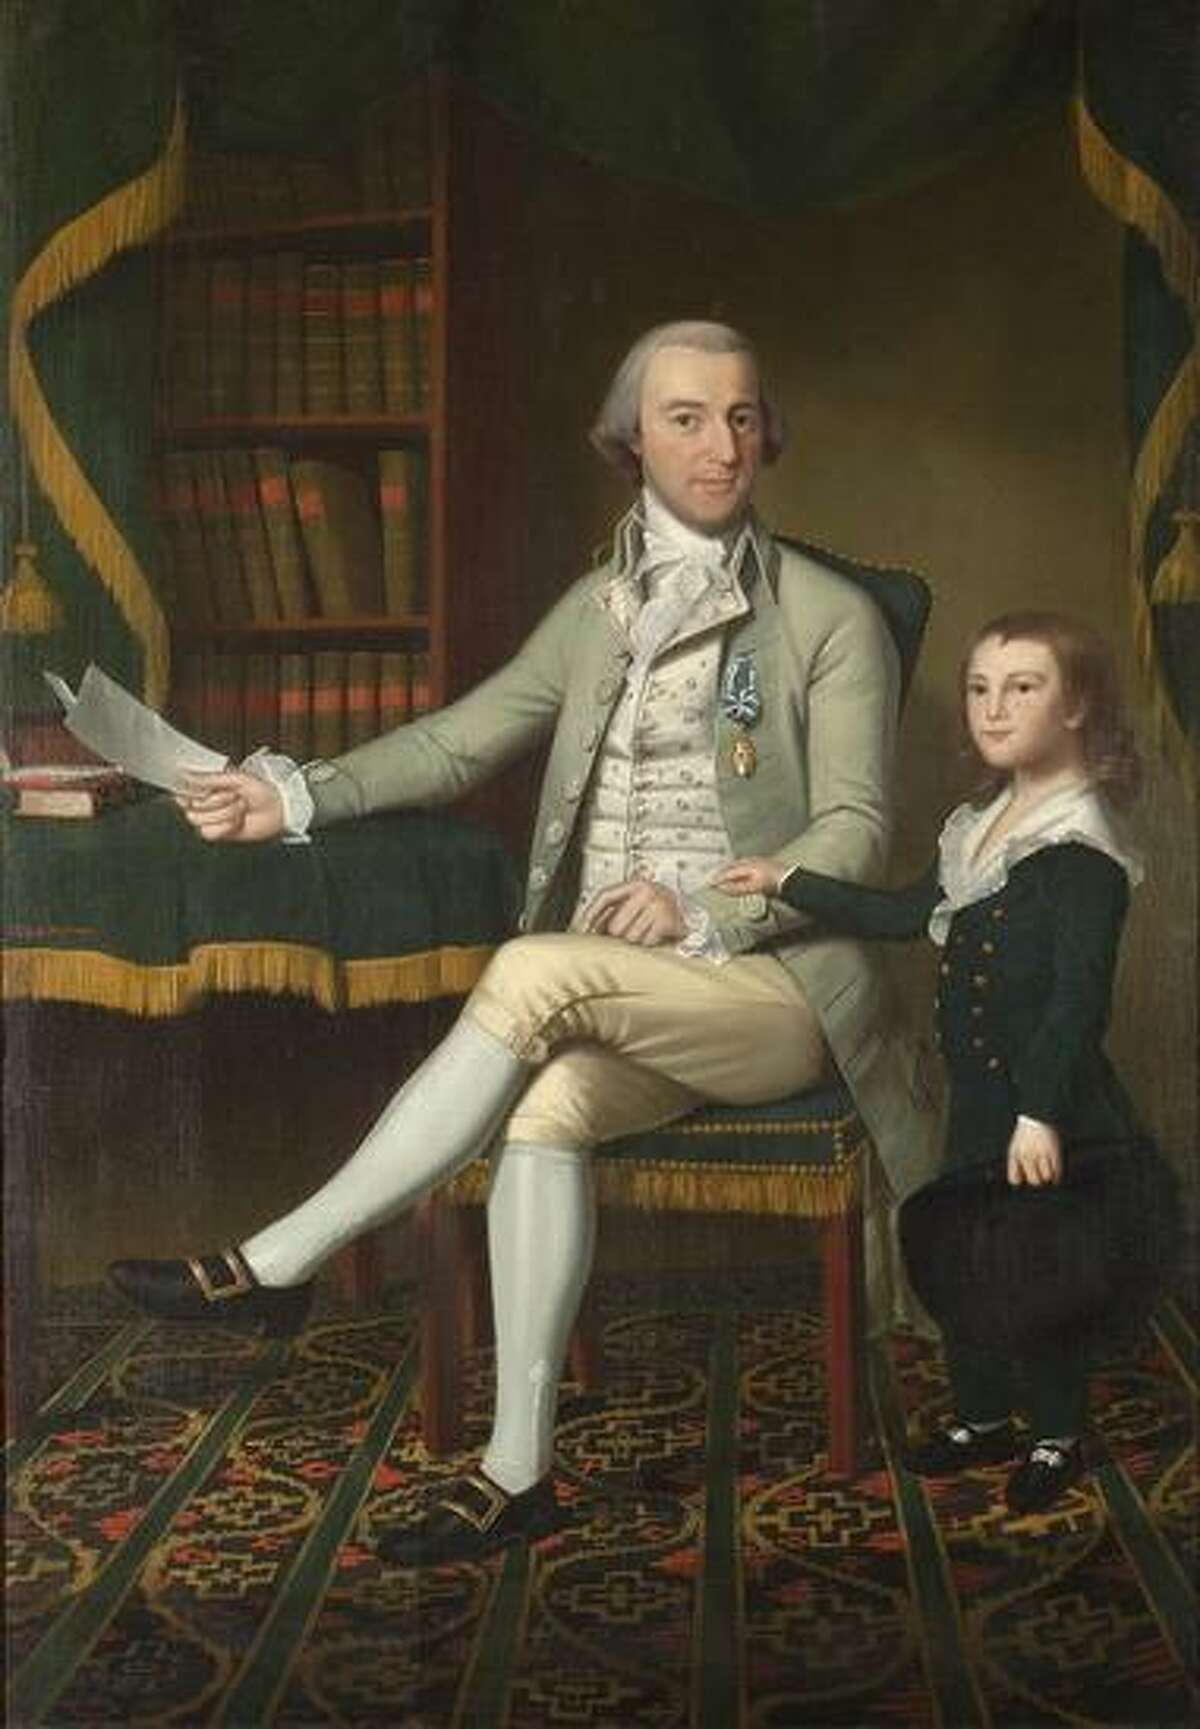 Benjamin Tallmadge, in a painting provided by the Litchfield Historical Society.